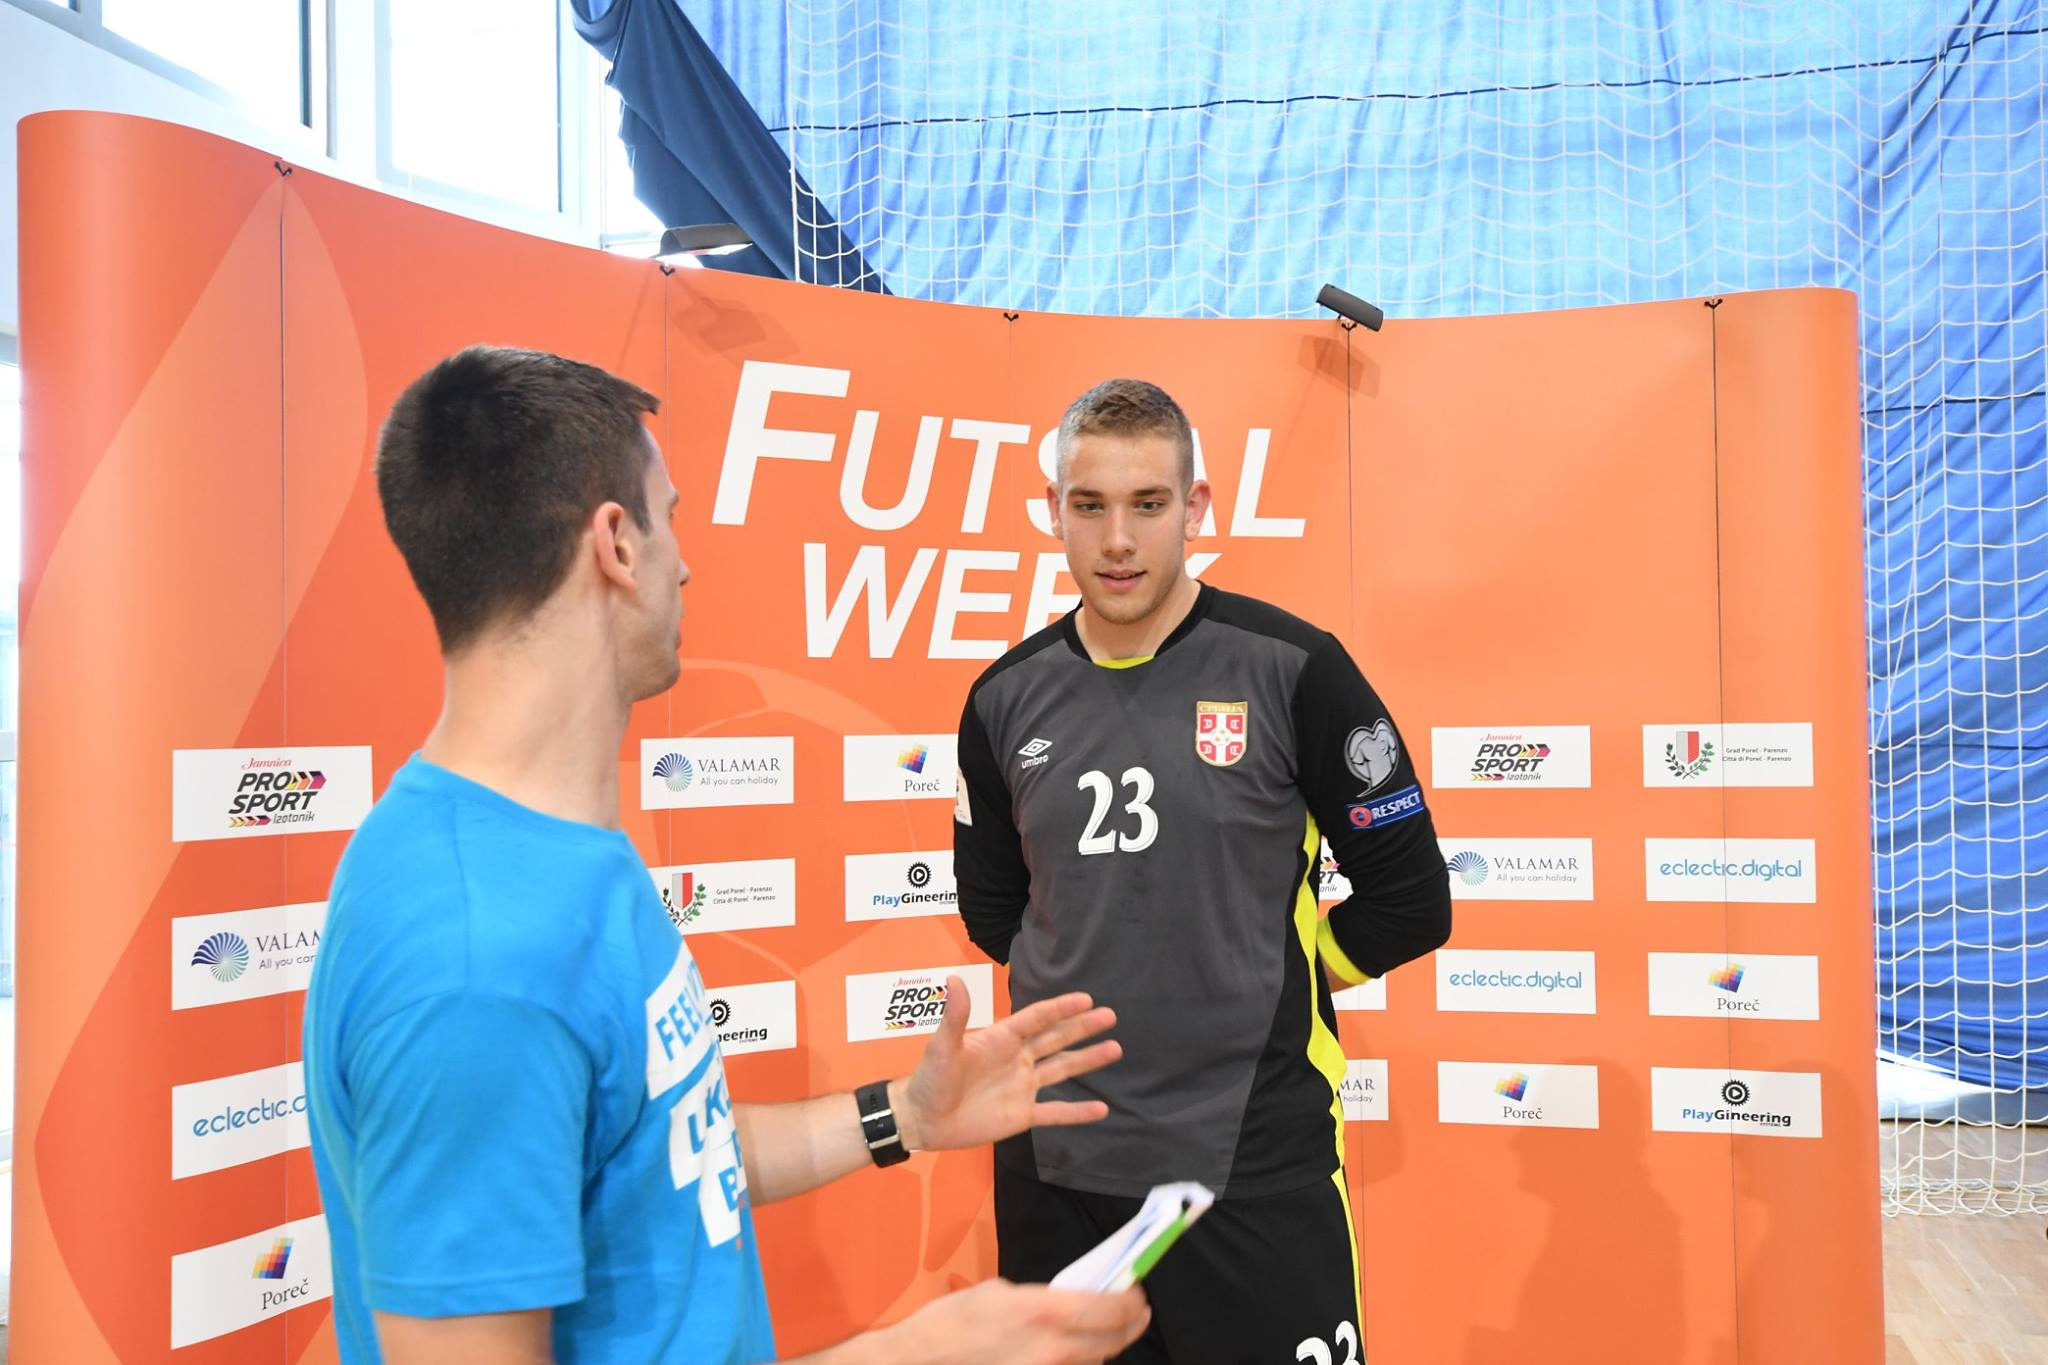 Where to find photos, videos and all Futsal Week content?